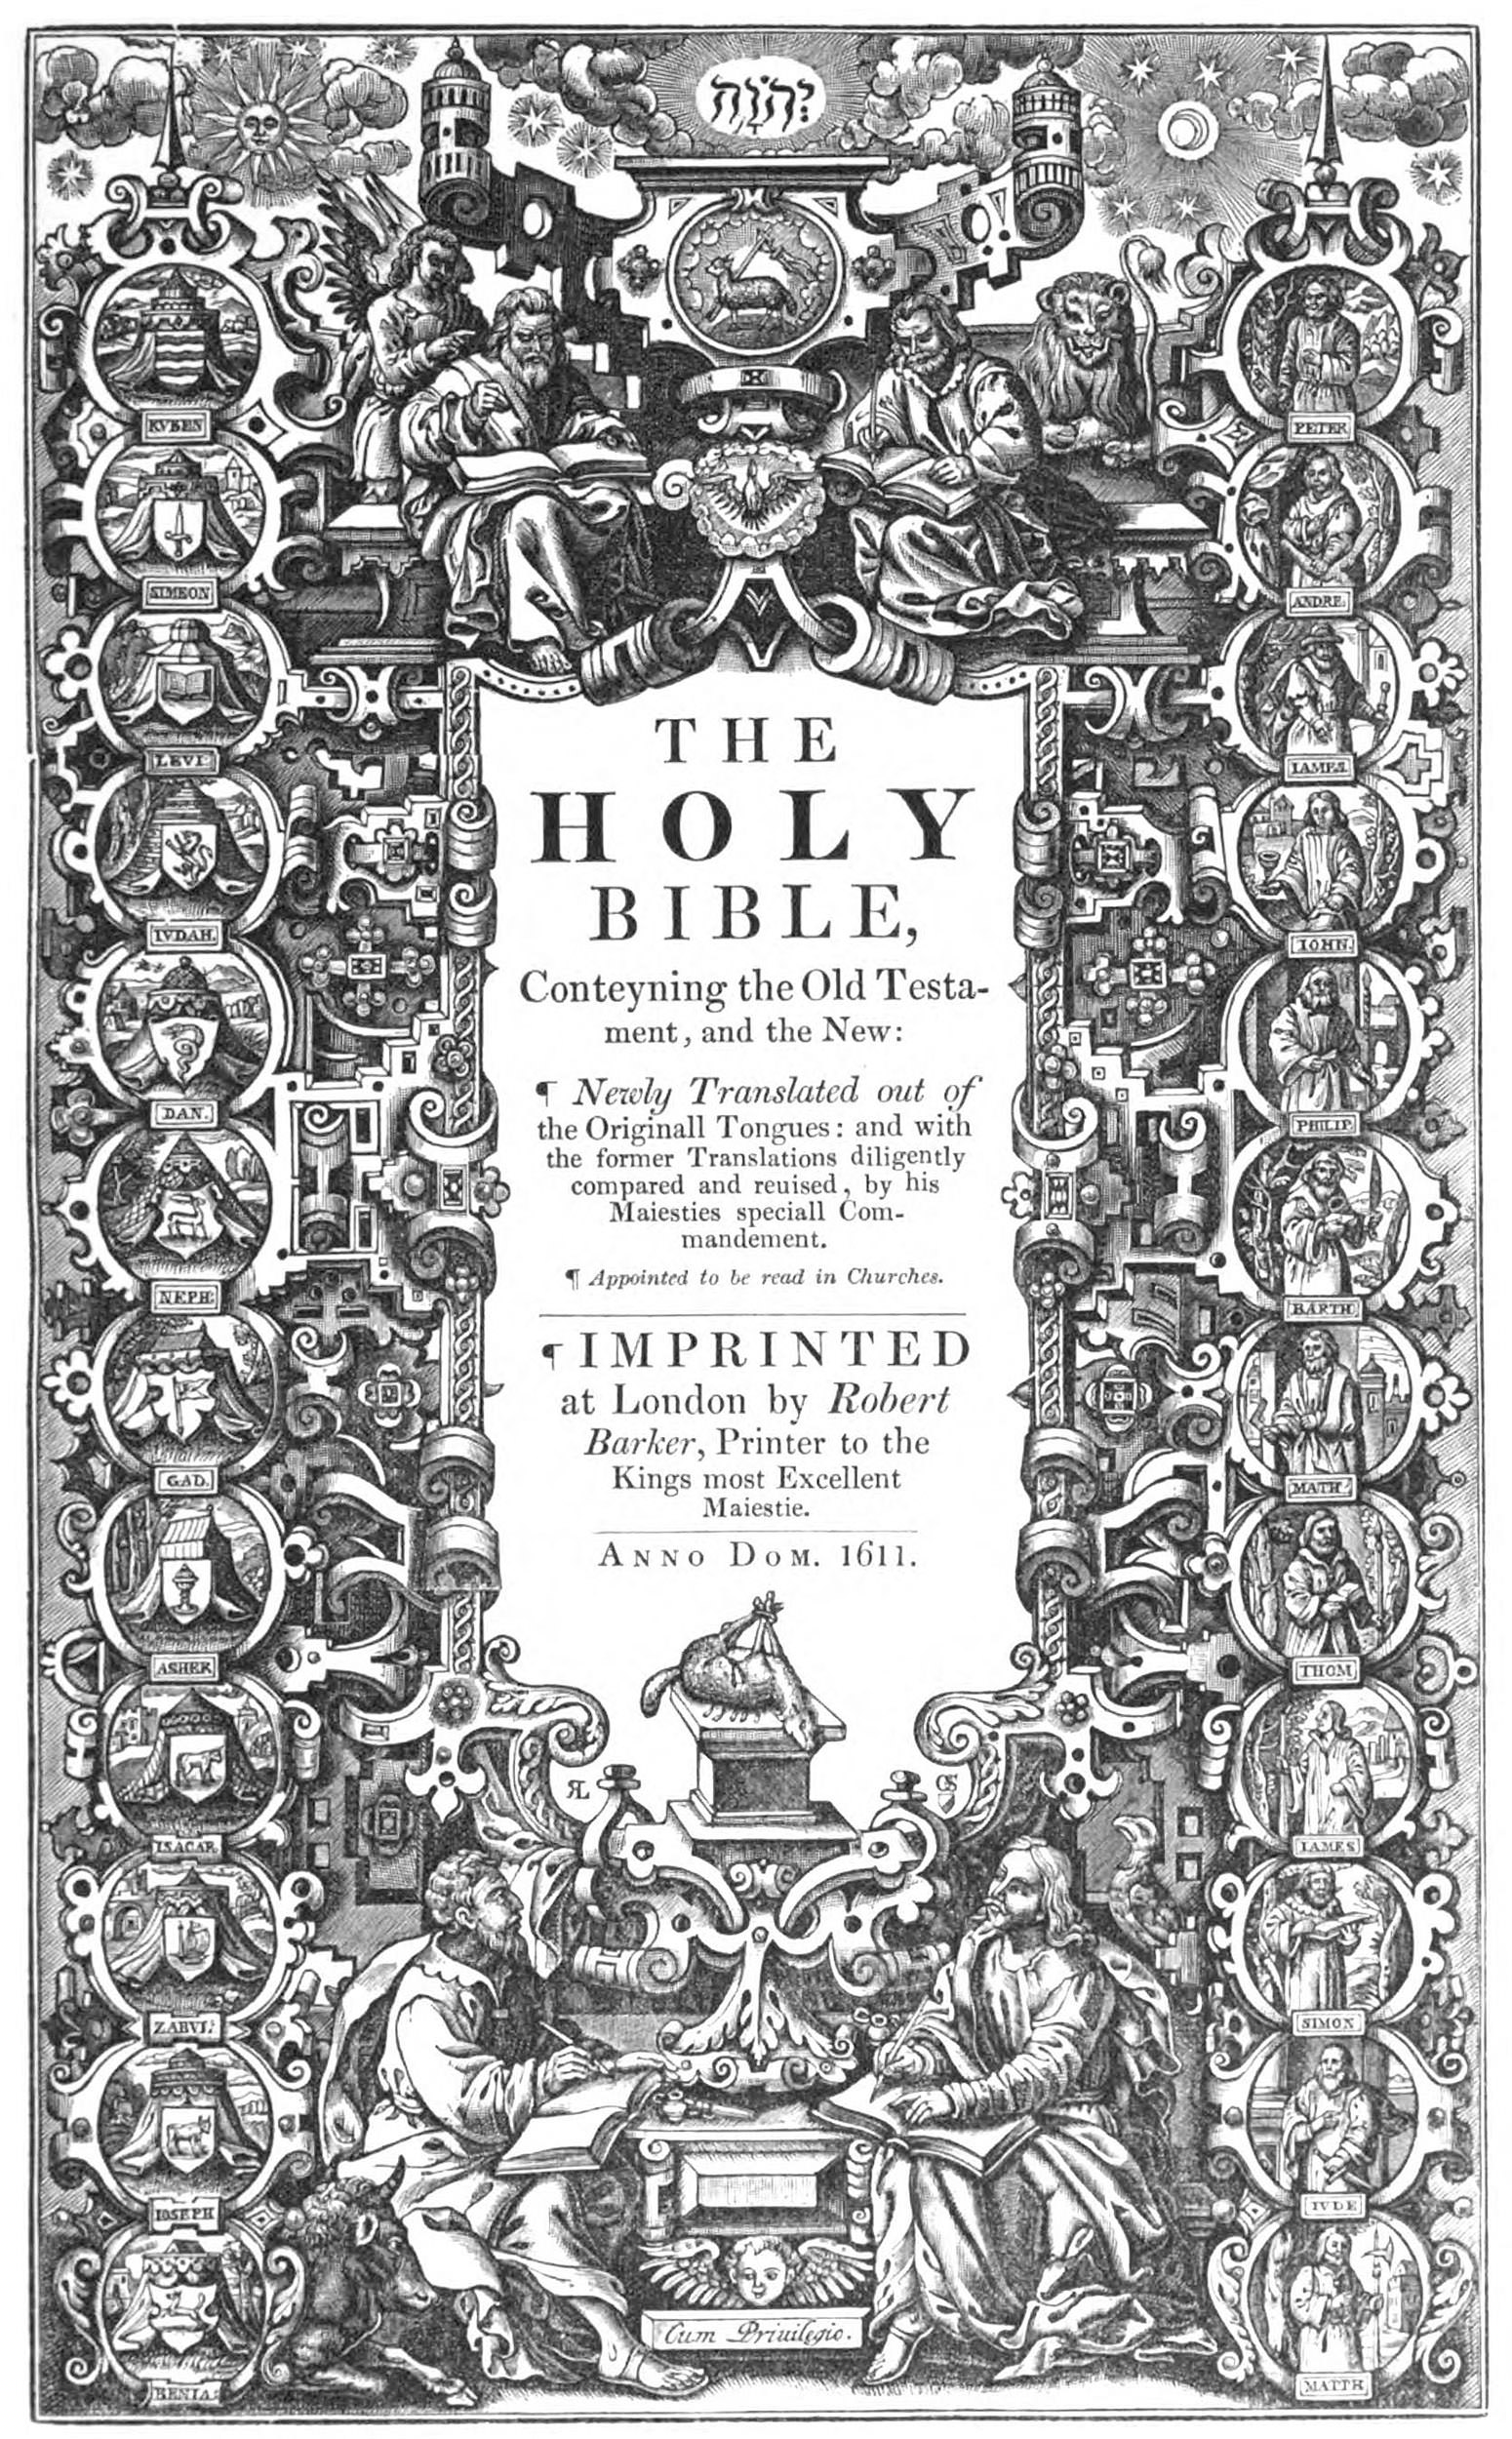 THE 47 SCHOLARS WHO TRANSLATED THE SCRIPTURES AND CREATED